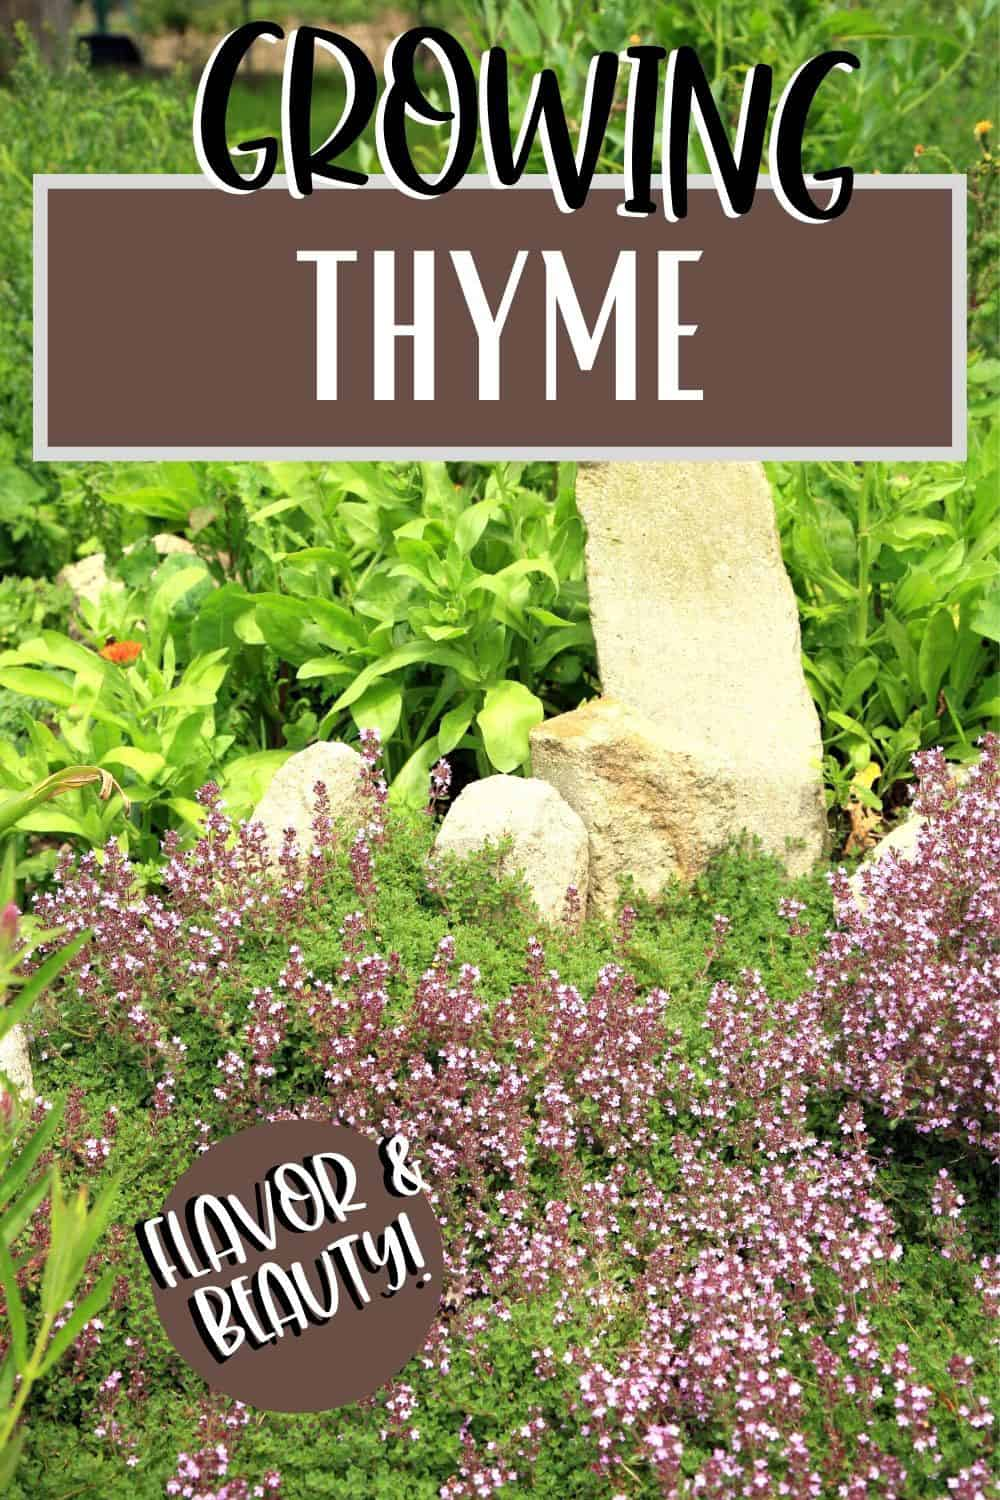 Thyme with purple flowers in a landscape